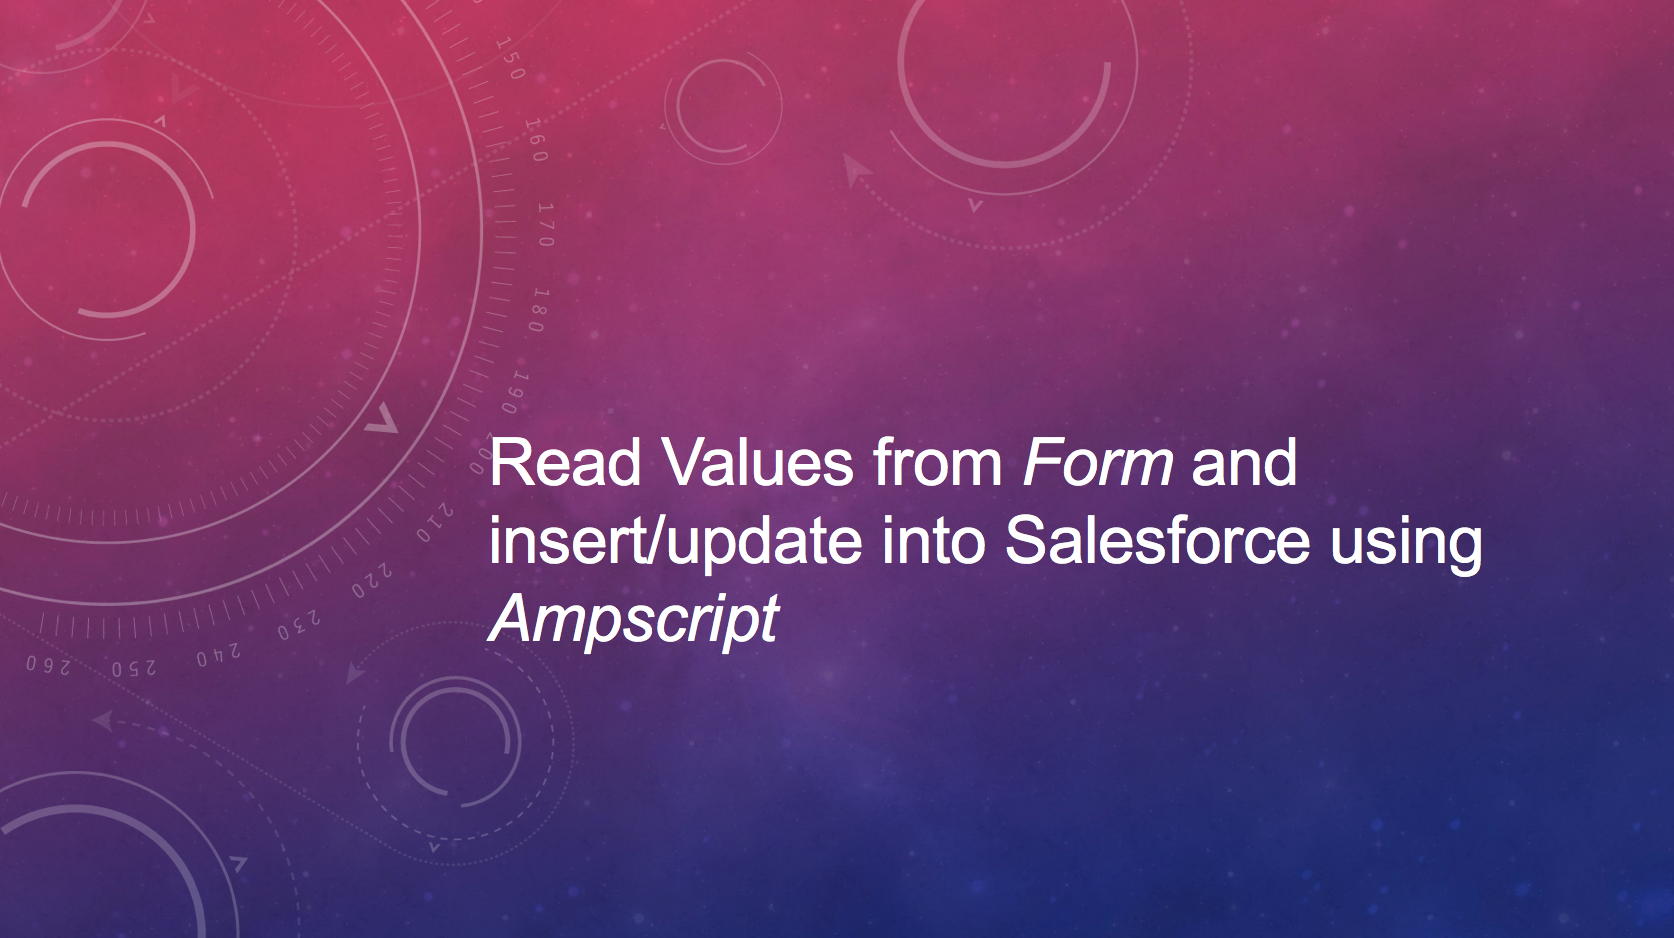 Read Values from Form and insert/update into Salesforce using Ampscript